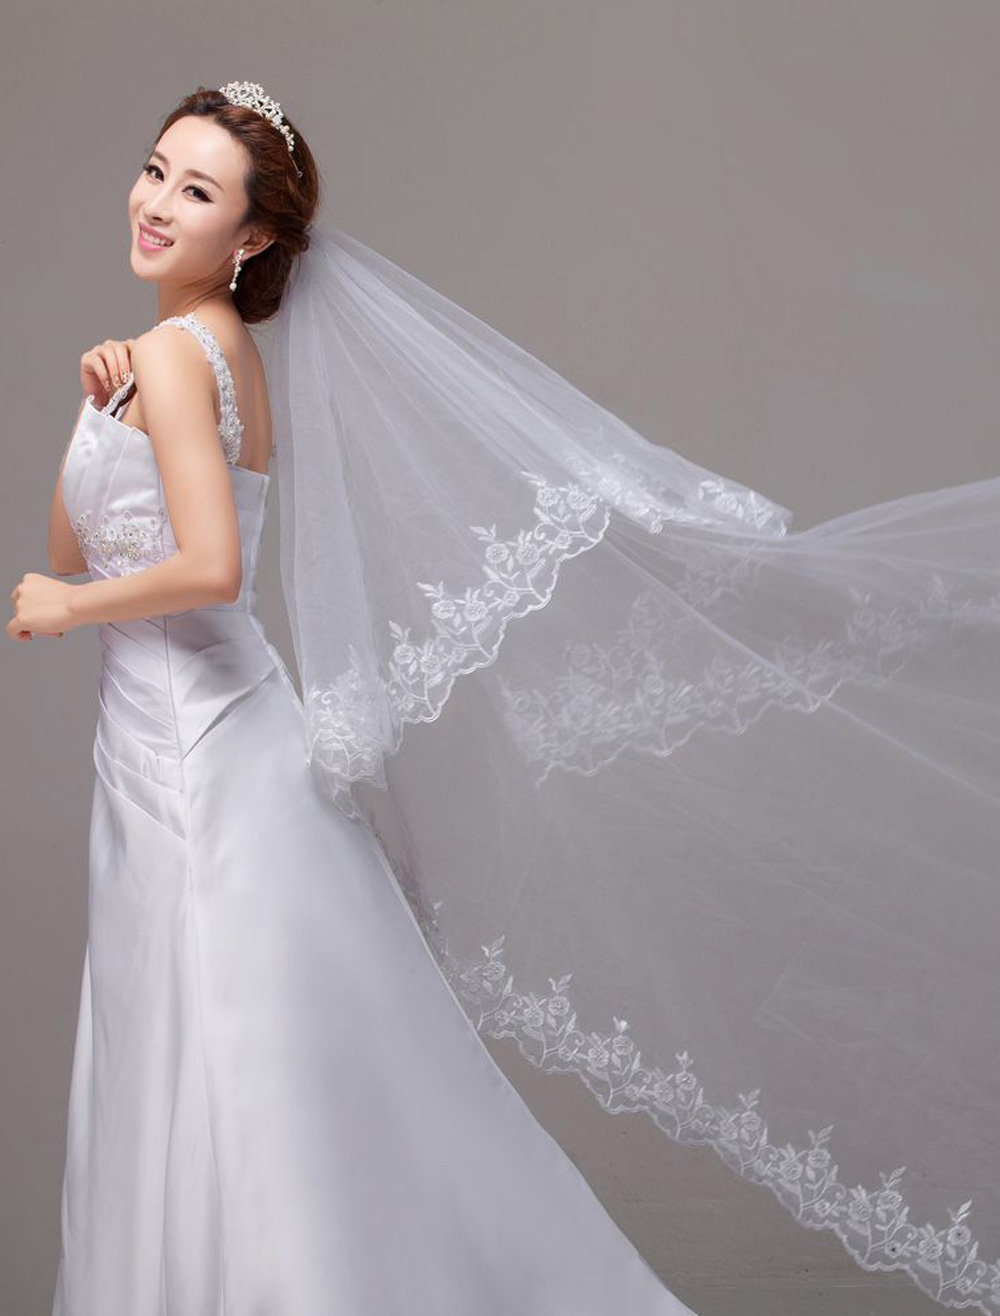 Waterfall Luxuary Embroideries Lace Edge Chapel Wedding Veil In One-Tier